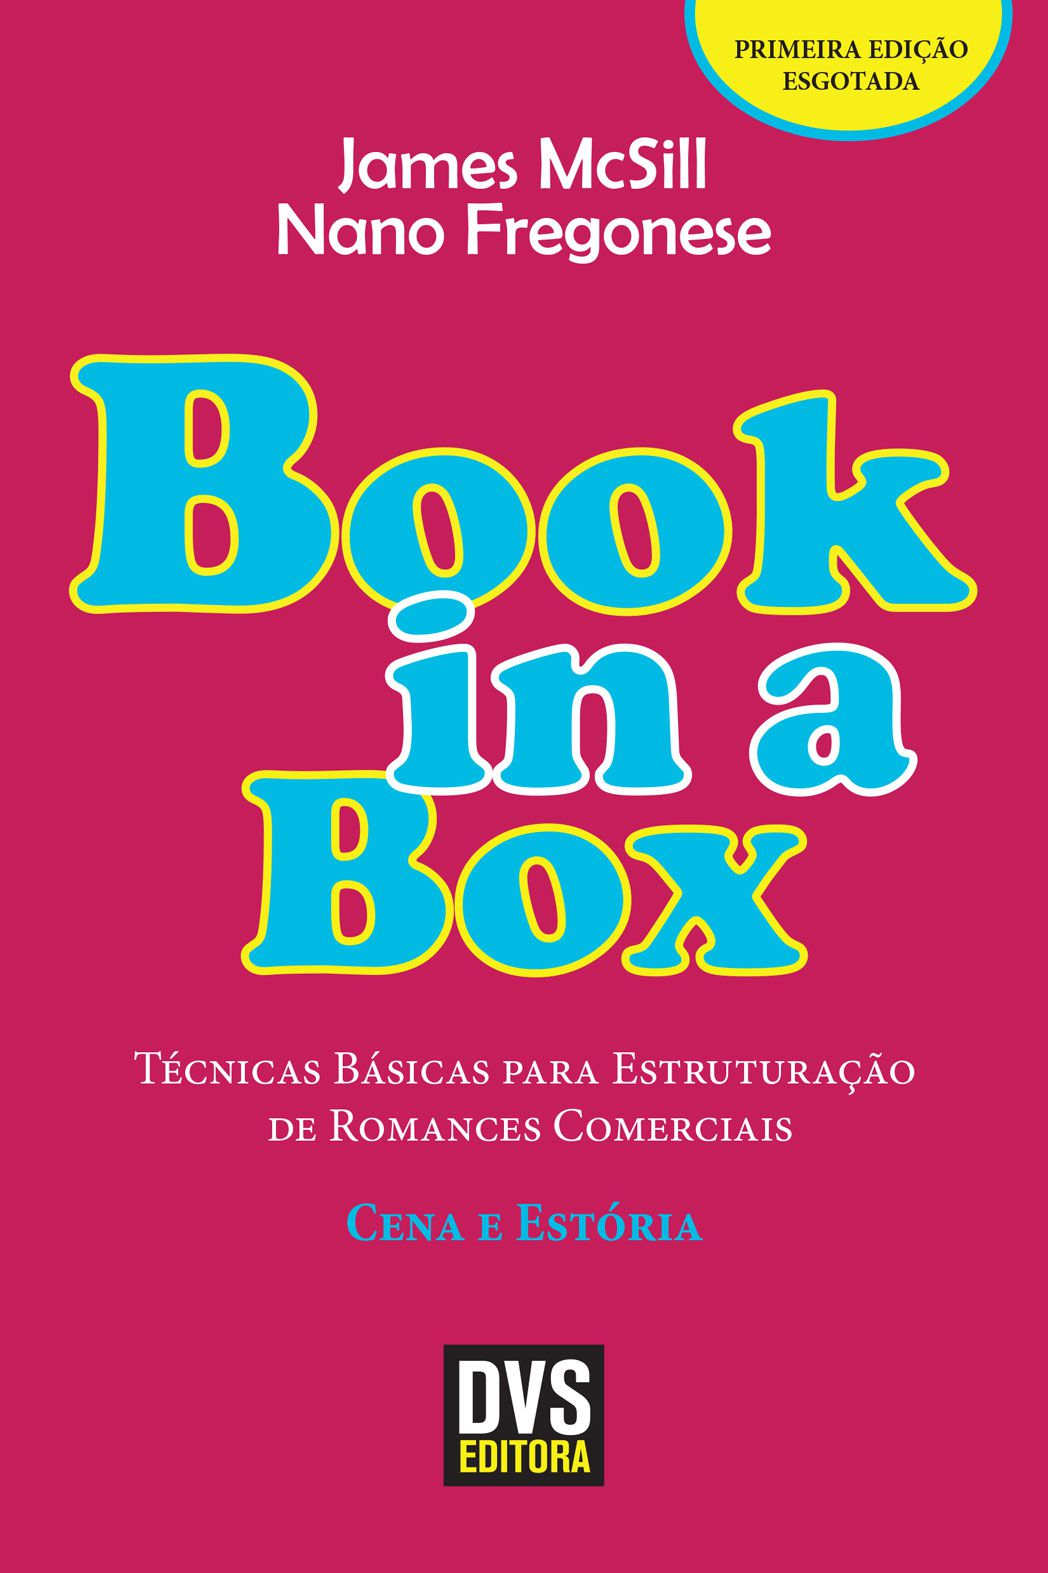 Book in a box - Cena e Estória